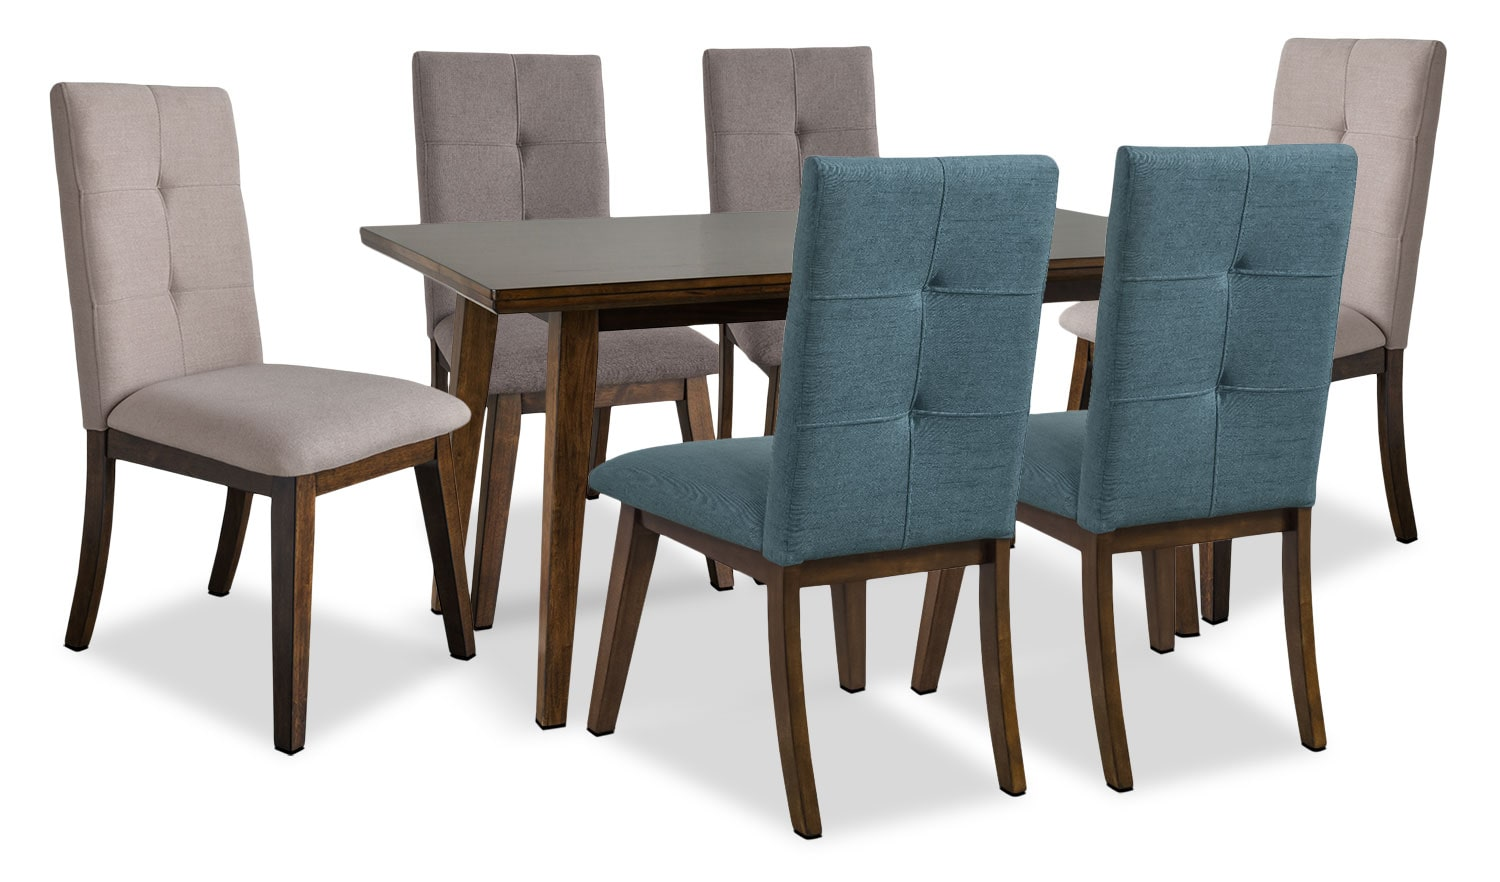 Dining Room Furniture - Chelsea 7-Piece Dining Table Package with Assorted Colour Chairs